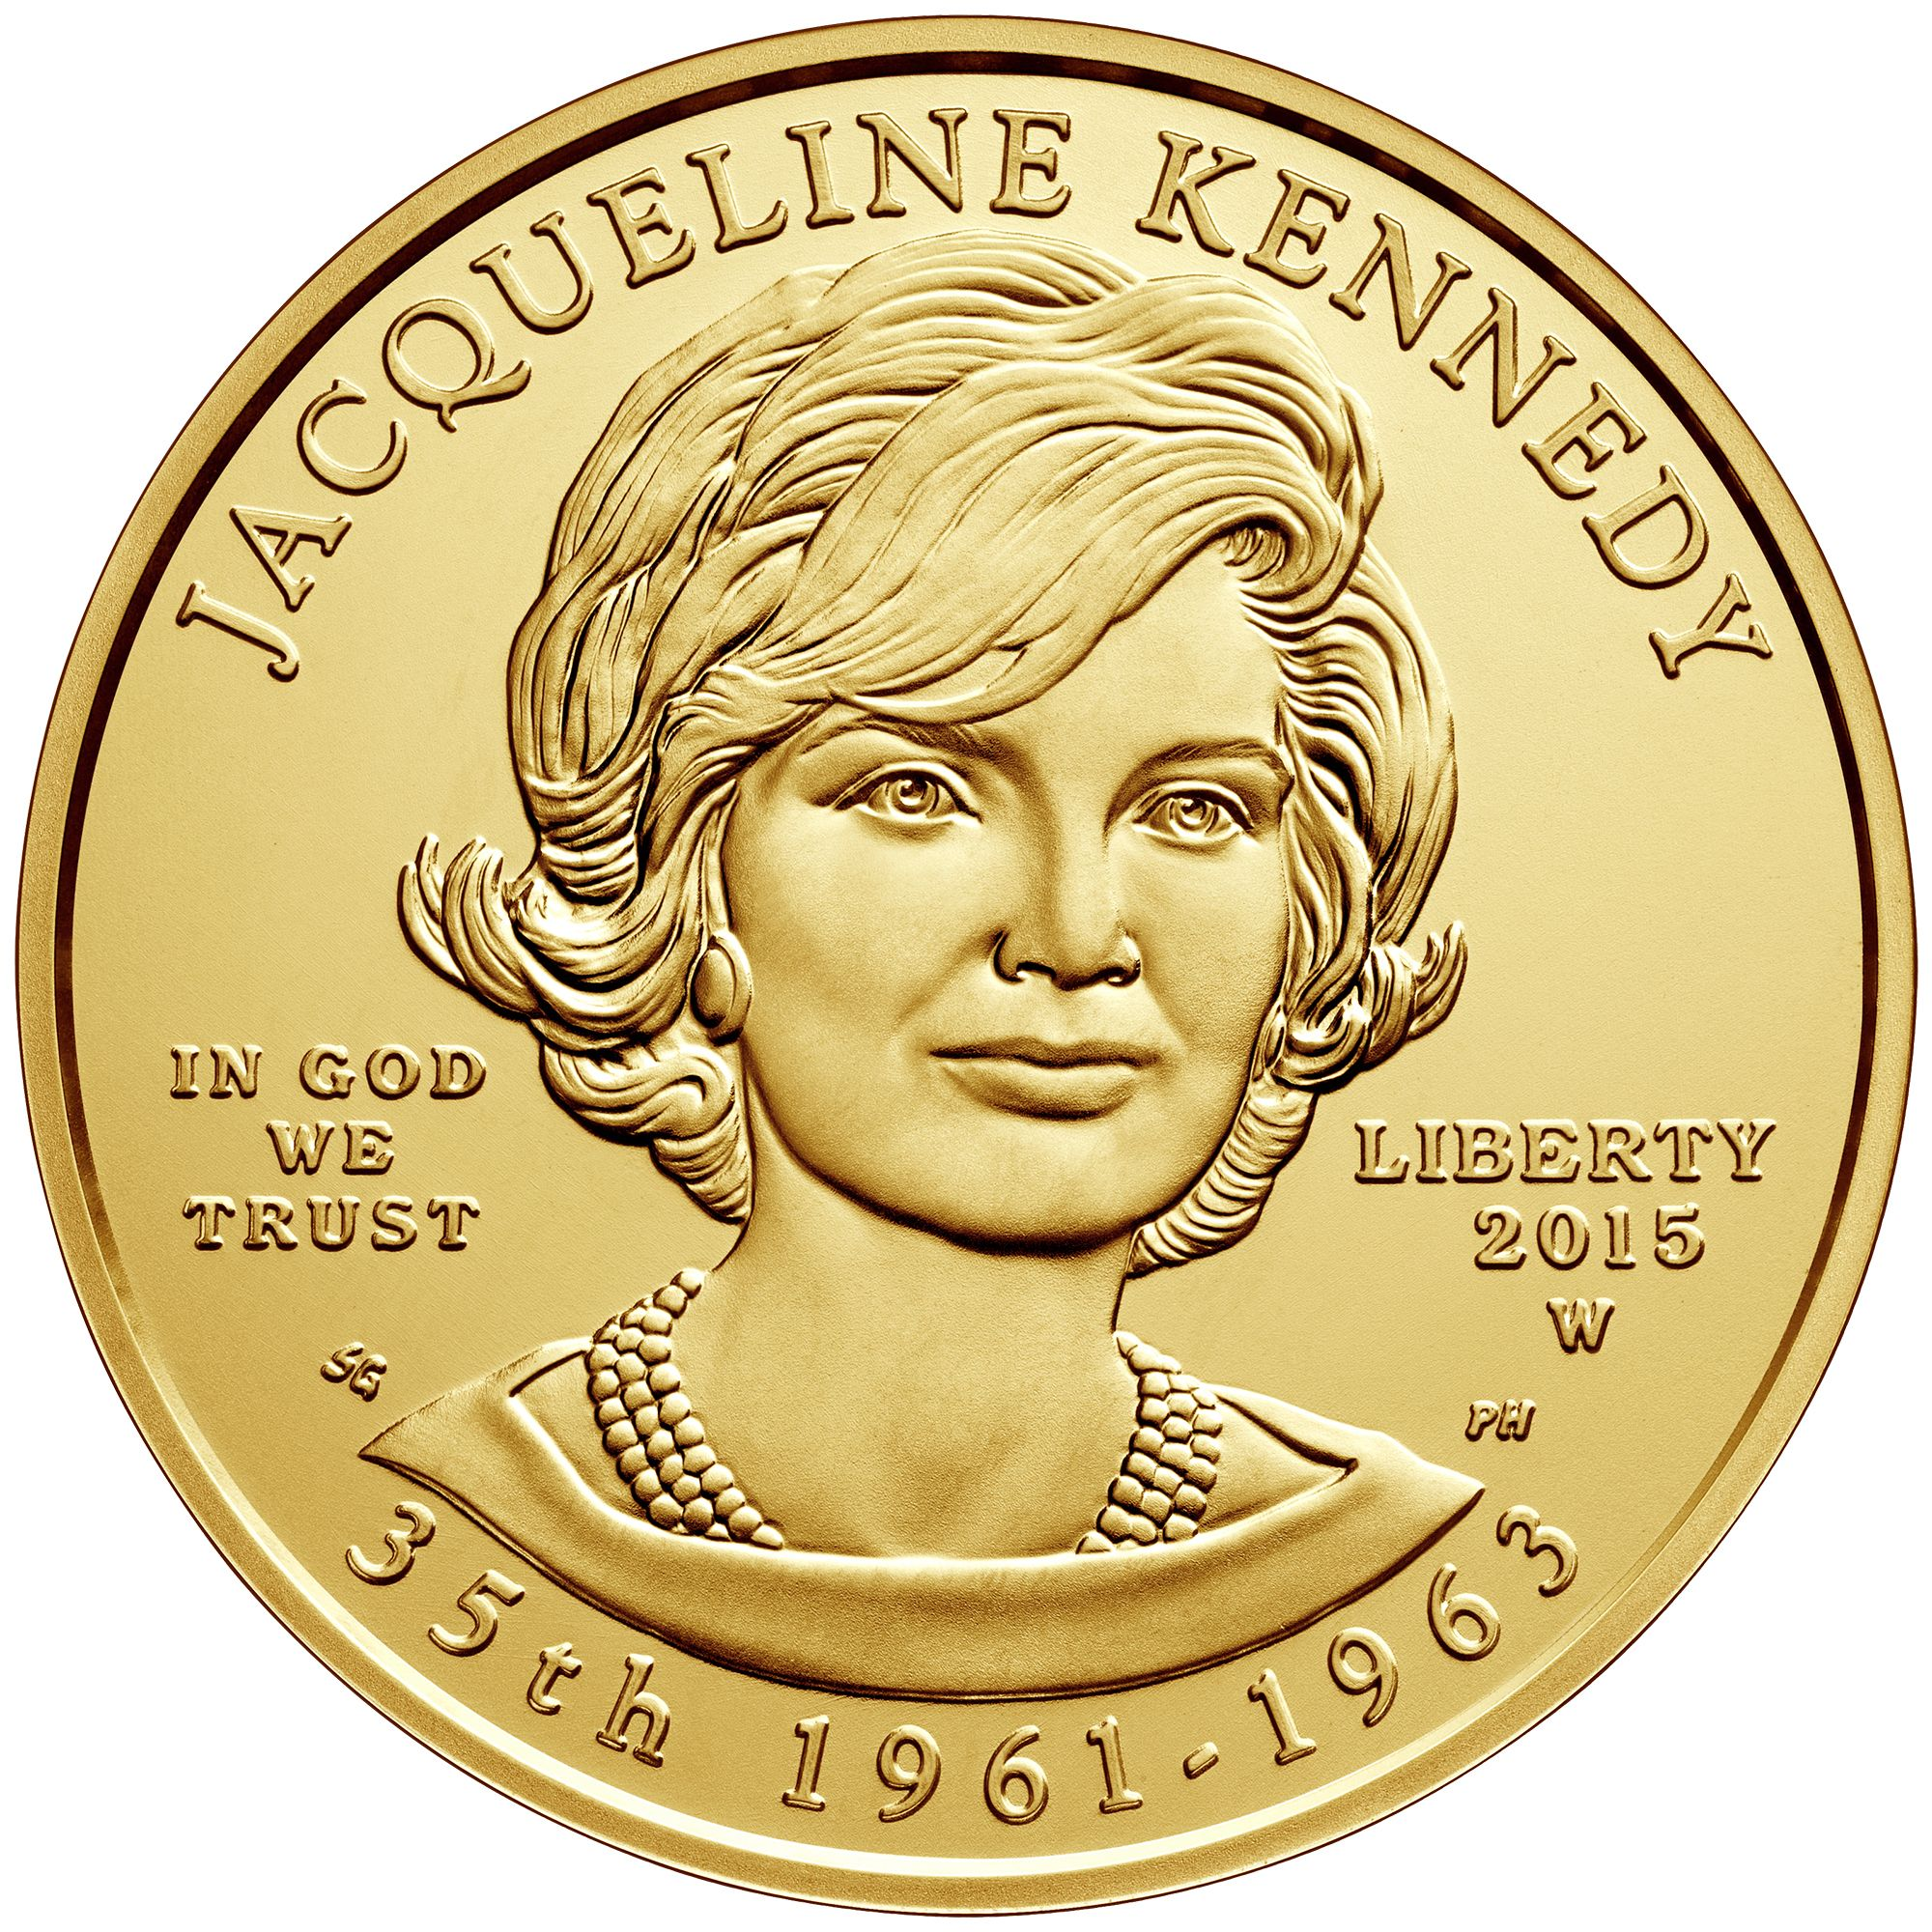 Pin By Sal On Jacqueline Bouvier Kennedy America S Princess Gold Bullion Coins Gold Coins Coins